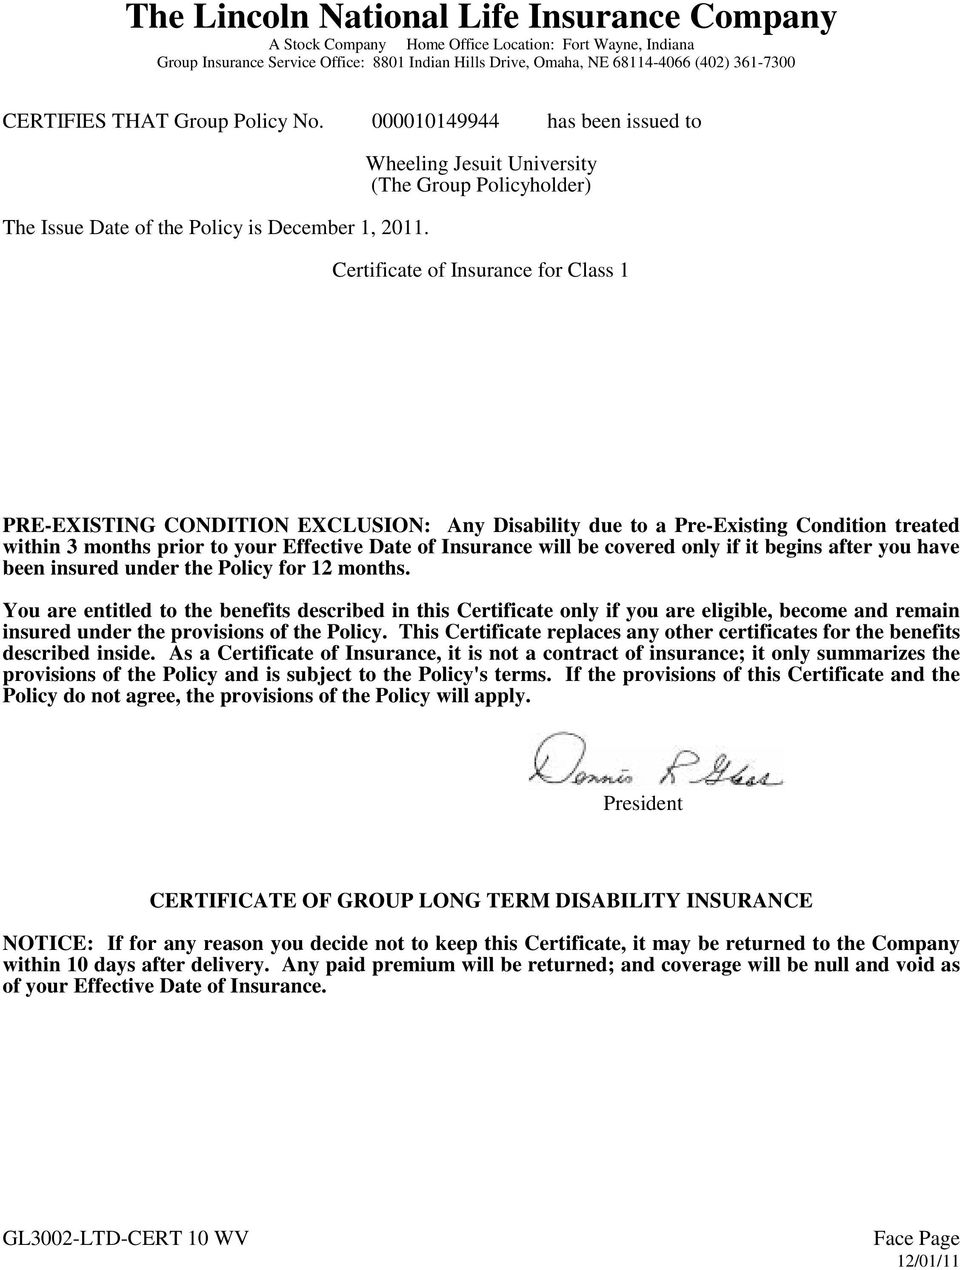 Wheeling Jesuit University (The Group Policyholder) Certificate of Insurance for Class 1 PRE-EXISTING CONDITION EXCLUSION: Any Disability due to a Pre-Existing Condition treated within 3 months prior